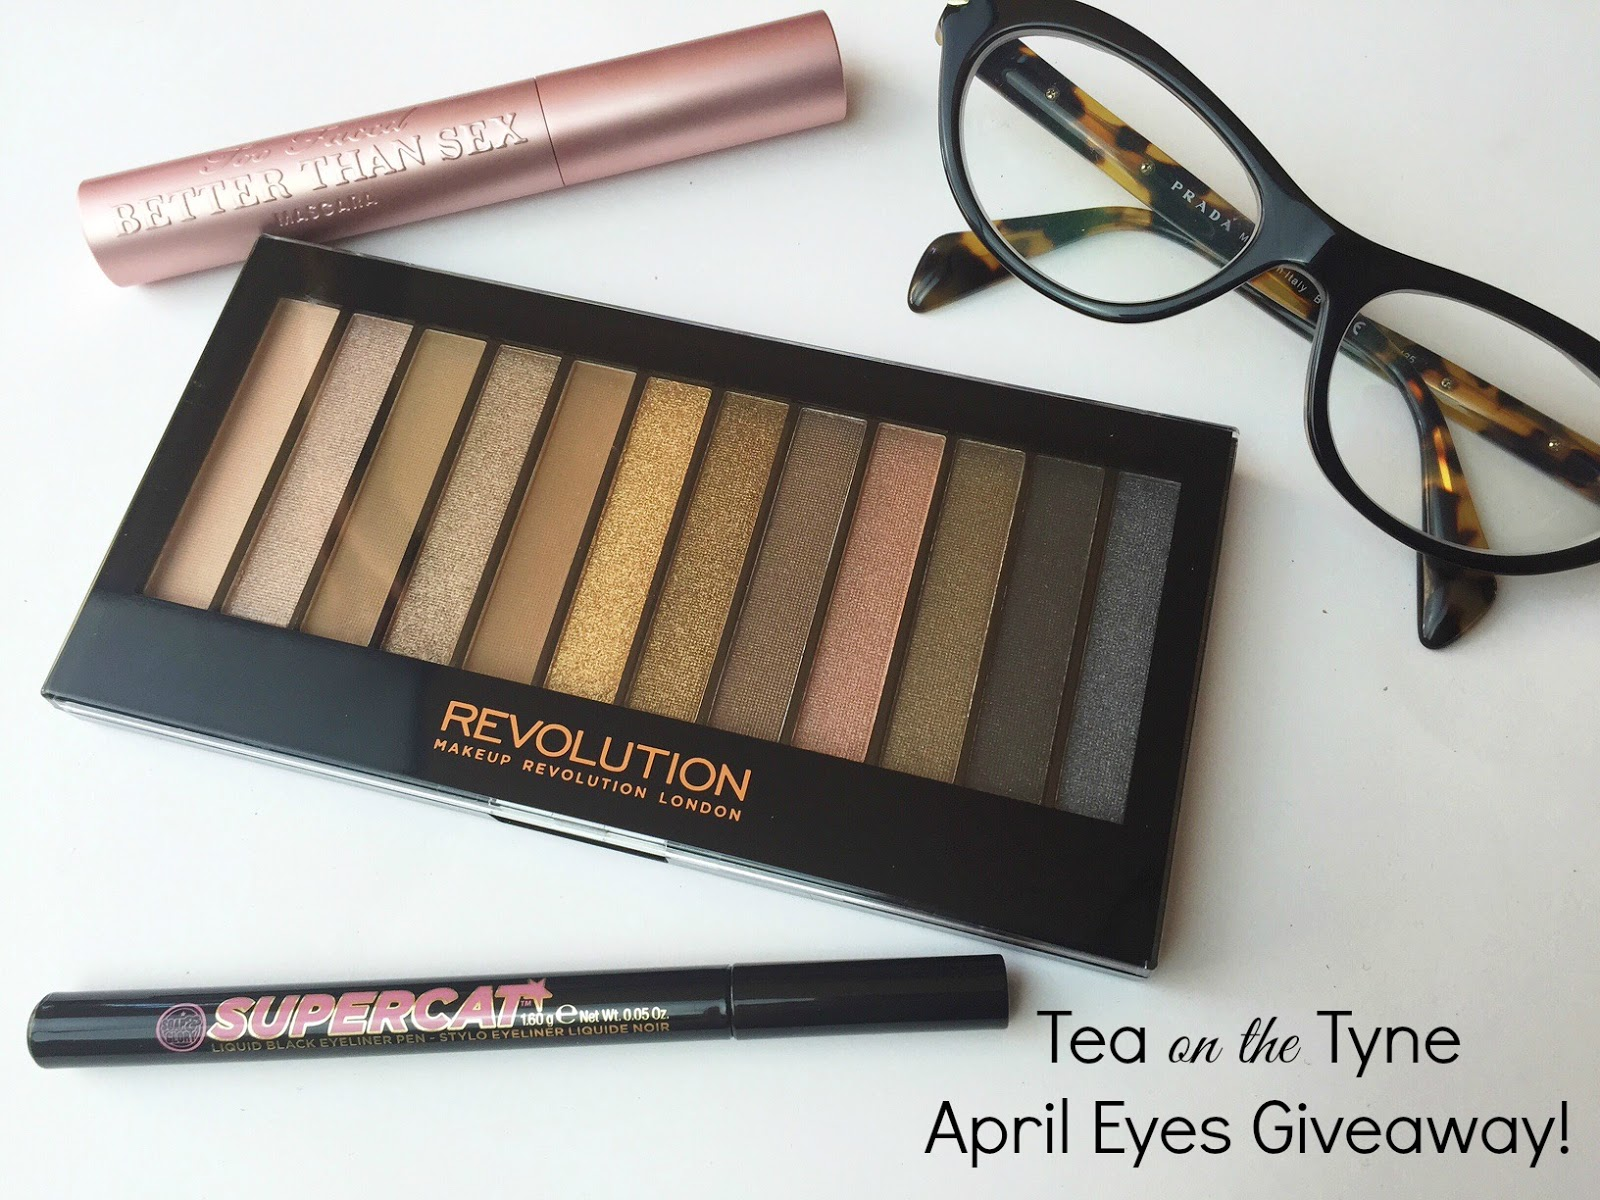 Vegan Beauty Giveaway - Makeup Revolution Redemption Palette Iconic 1, Too Faced Better Than Sex Mascara, Soap & Glory Supercat Eyeliner